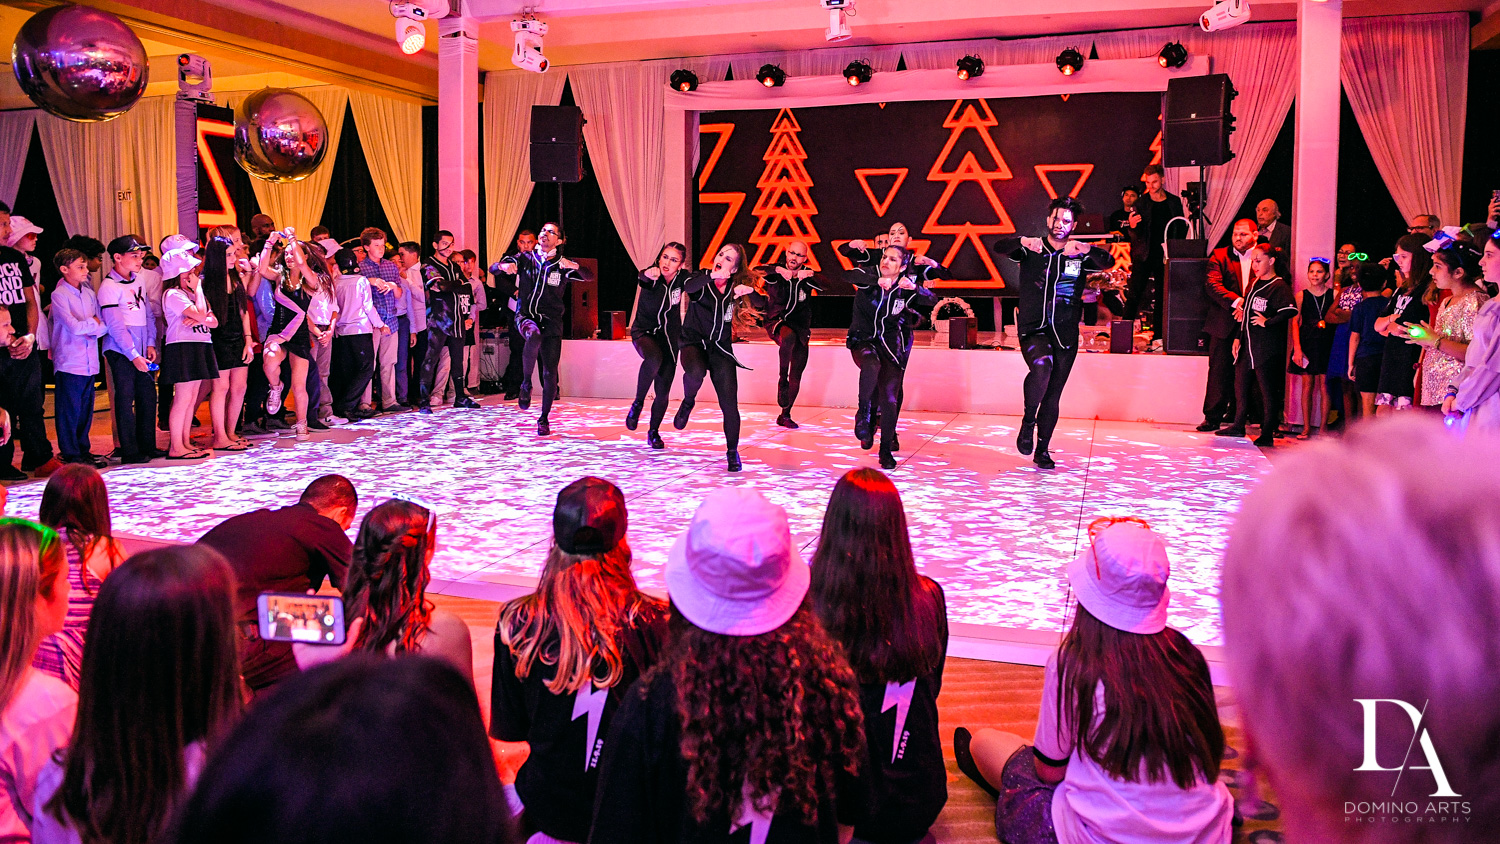 Dancers at Masquerade Ball Bat Mitzvah at Ritz Carlton Fort Lauderdale by Domino Arts Photography